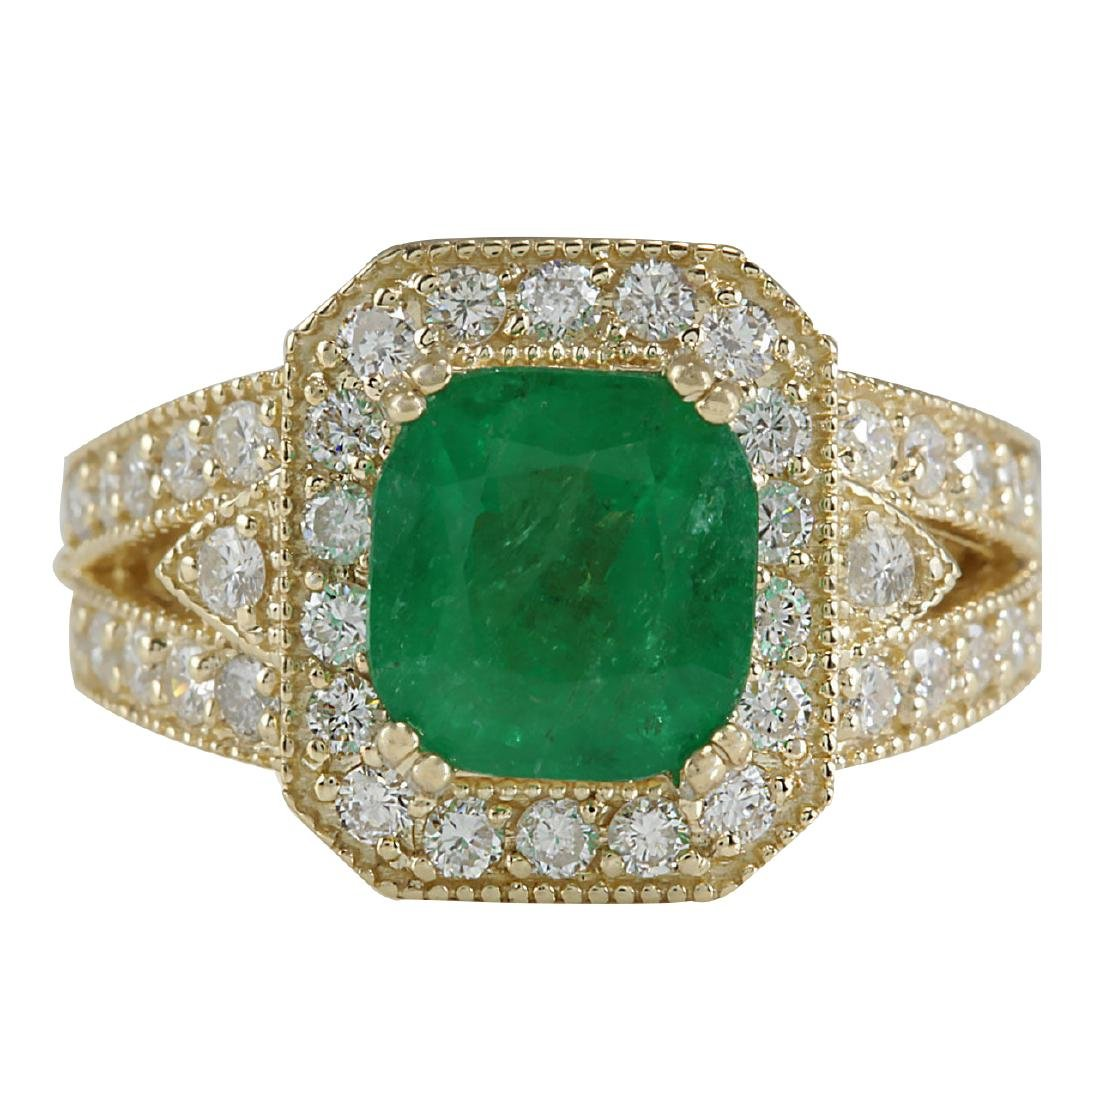 3.84CTW Natural Emerald And Diamond Ring 18K Solid